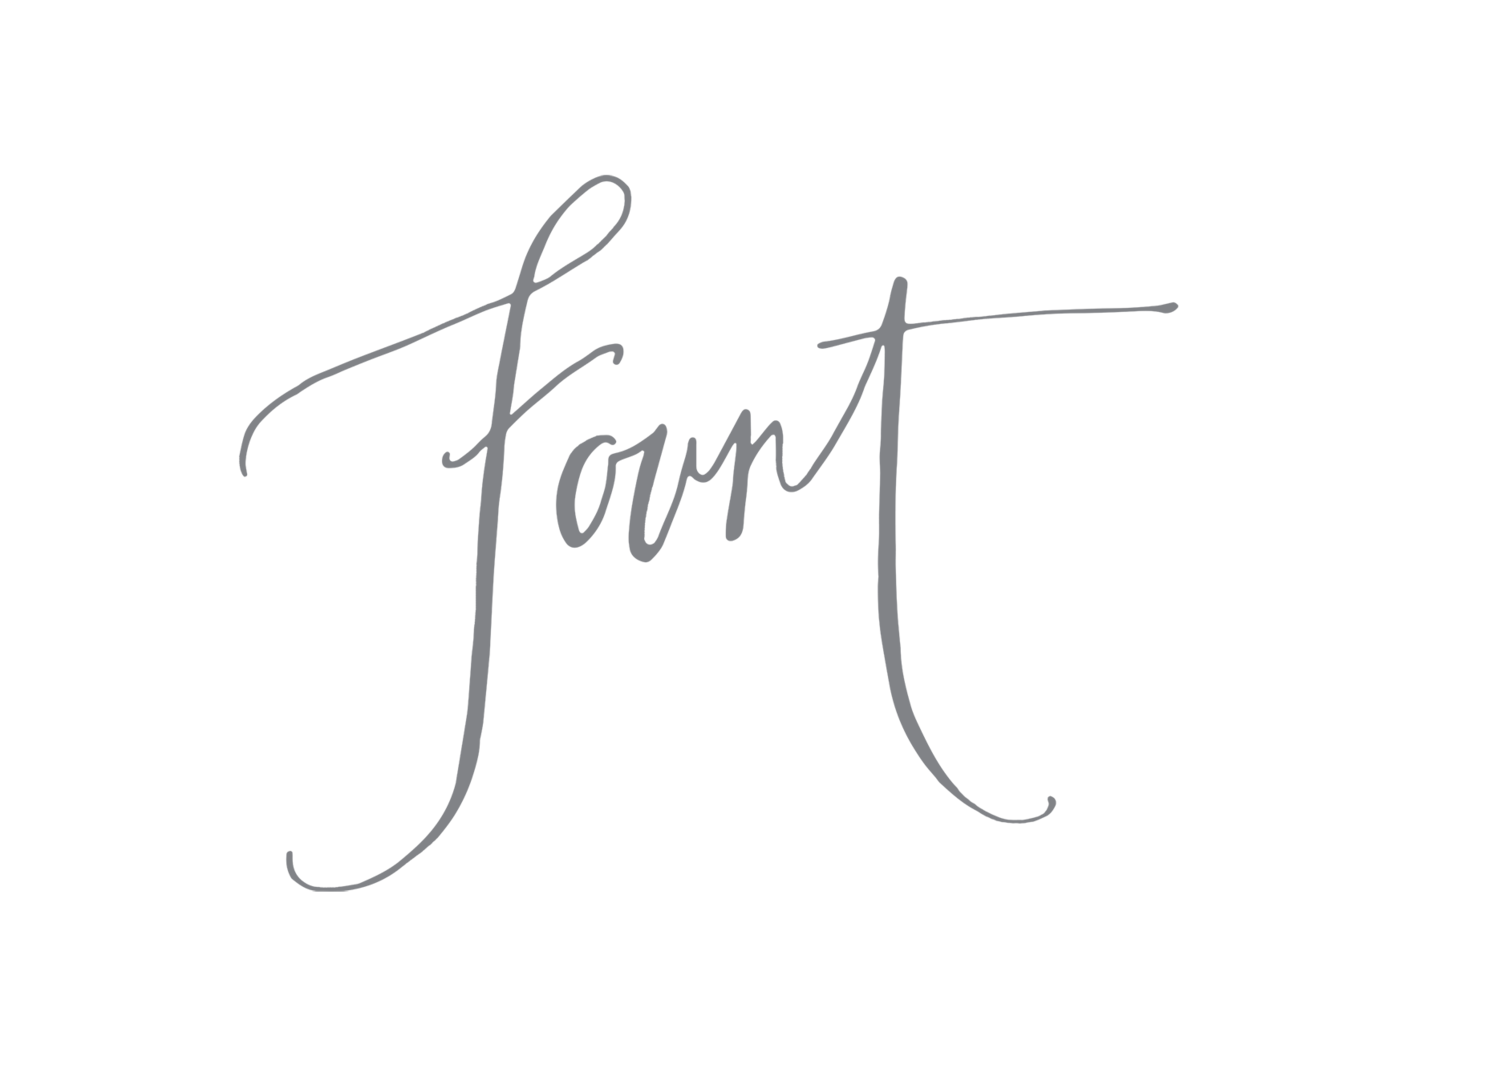 The Fount Collective